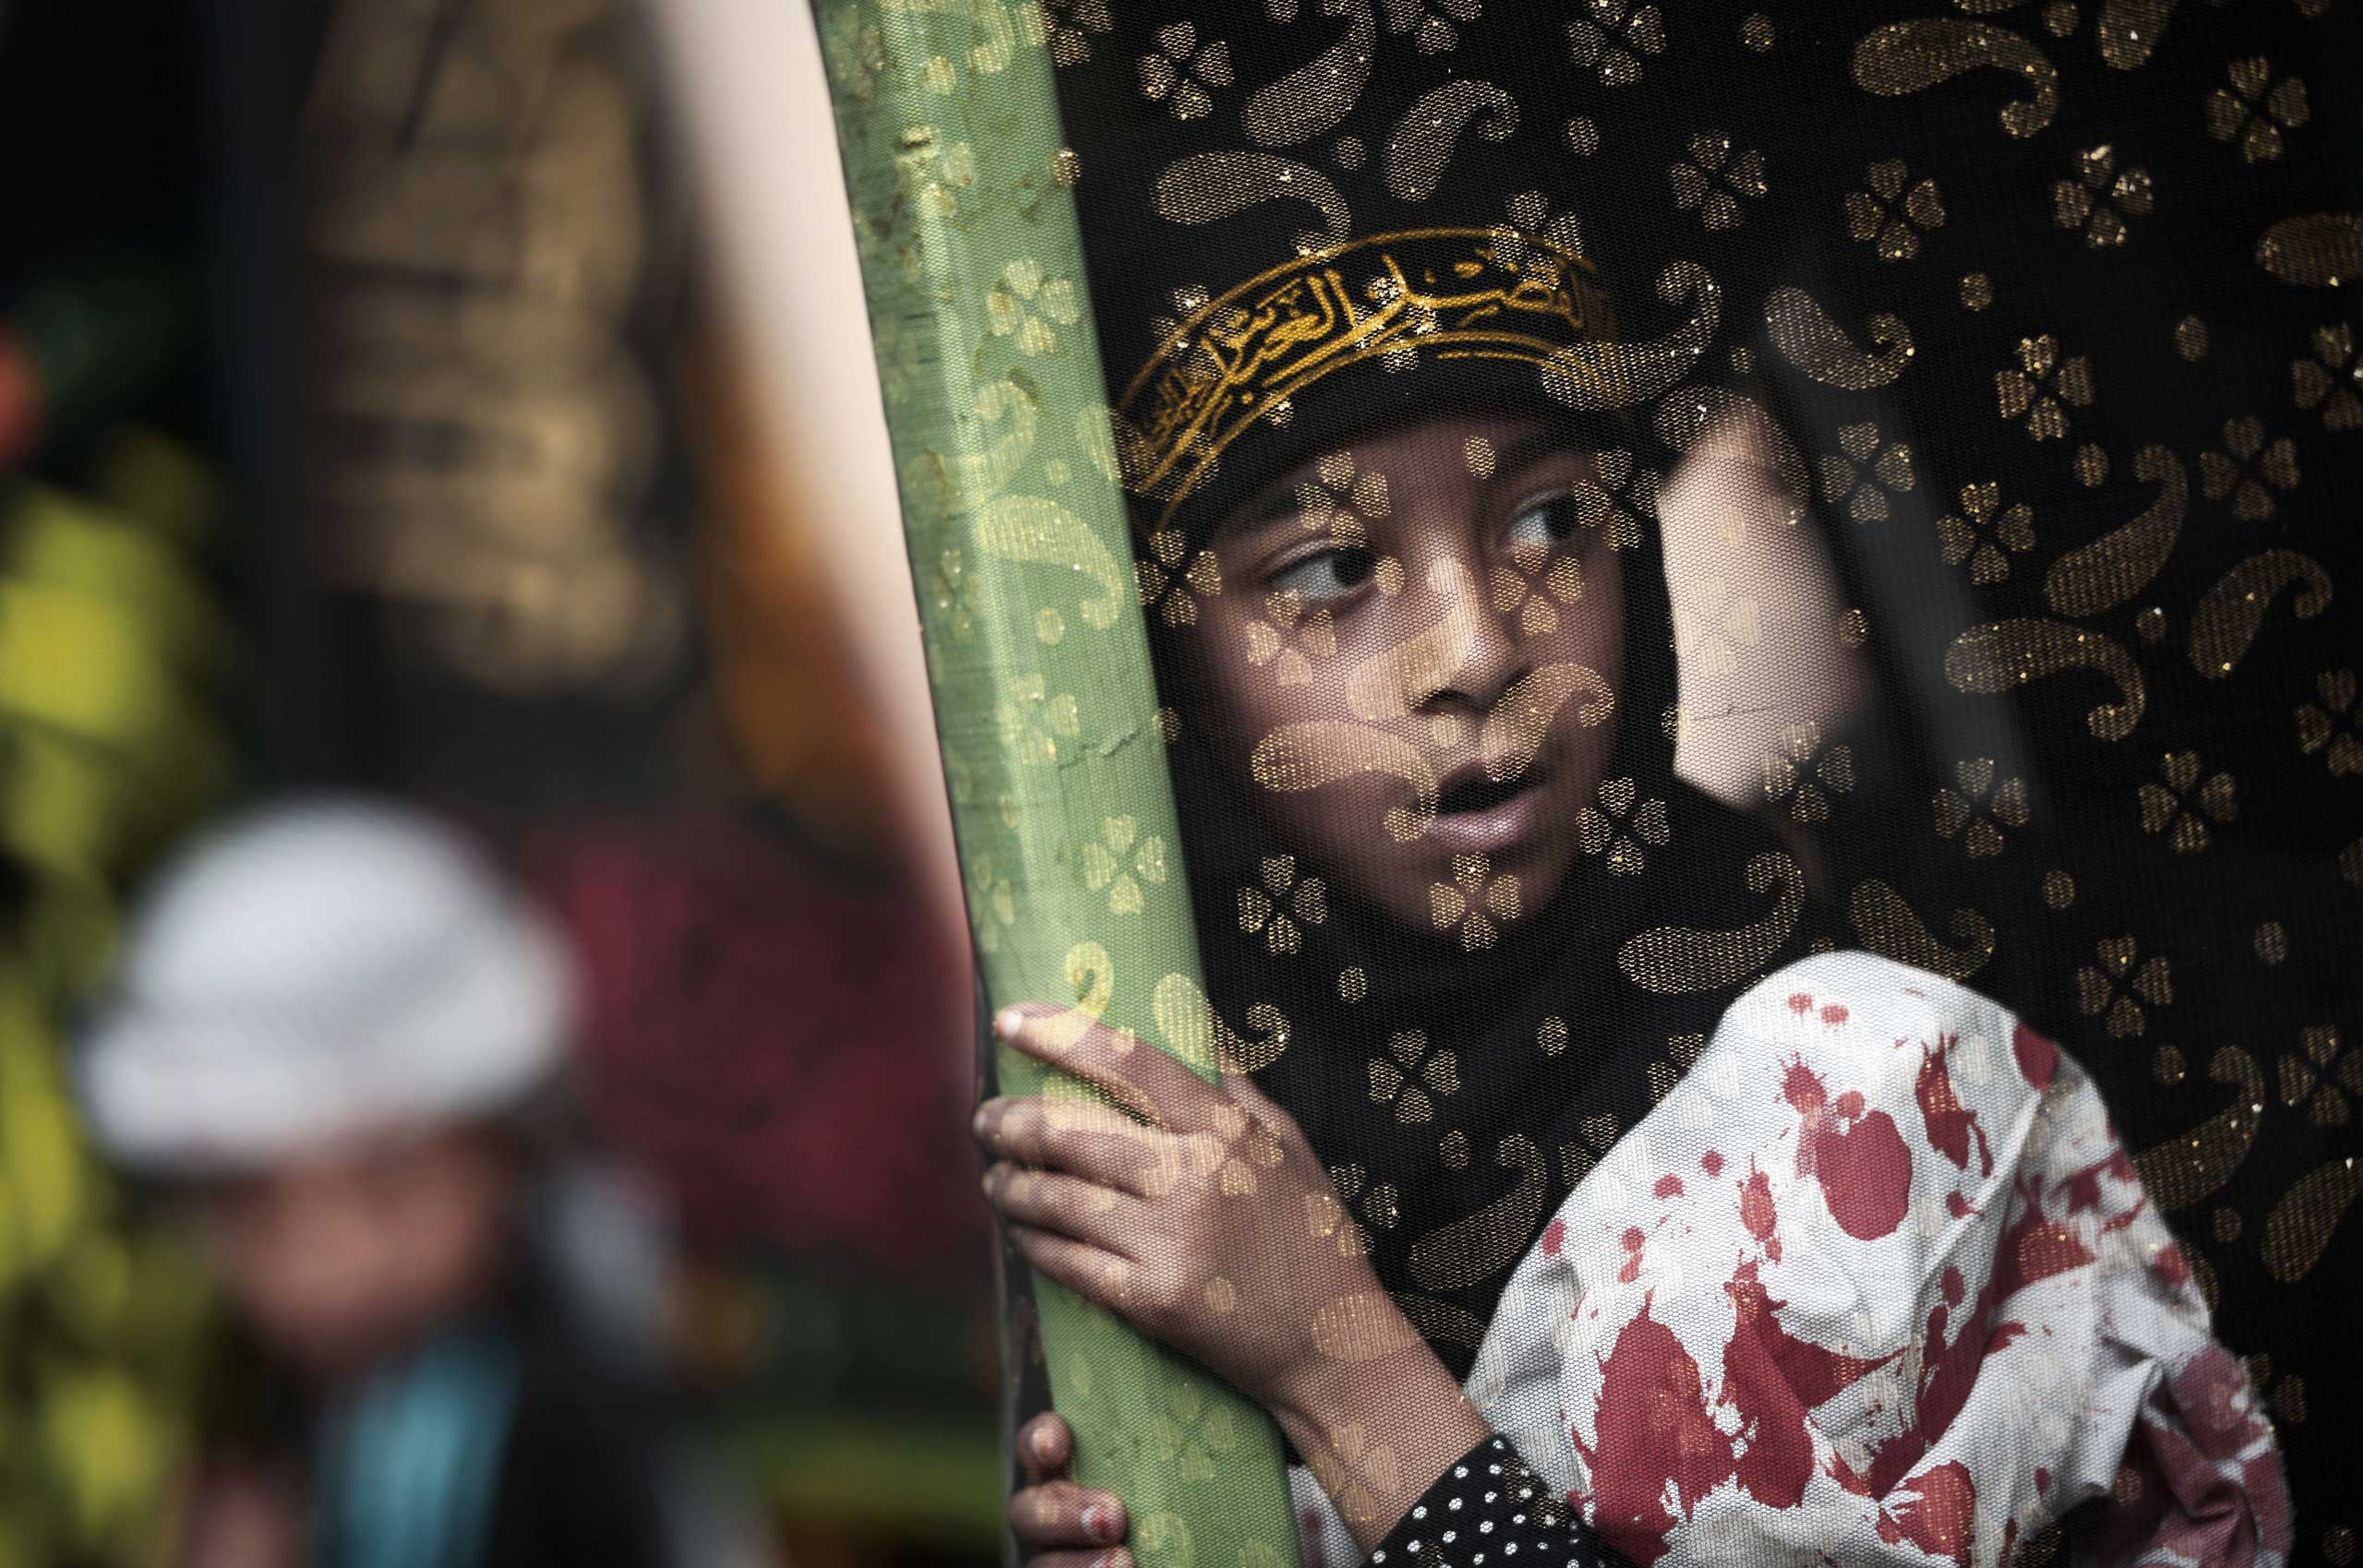 Nov. 4, 2014.                                A Bahraini Shiite Muslims girl takes part in a ceremony marking Ashura, which commemorates the seventh century slaying of Imam Hussein, the grandson of Prophet Mohammed, in the village of Sanabis, west of Manama.